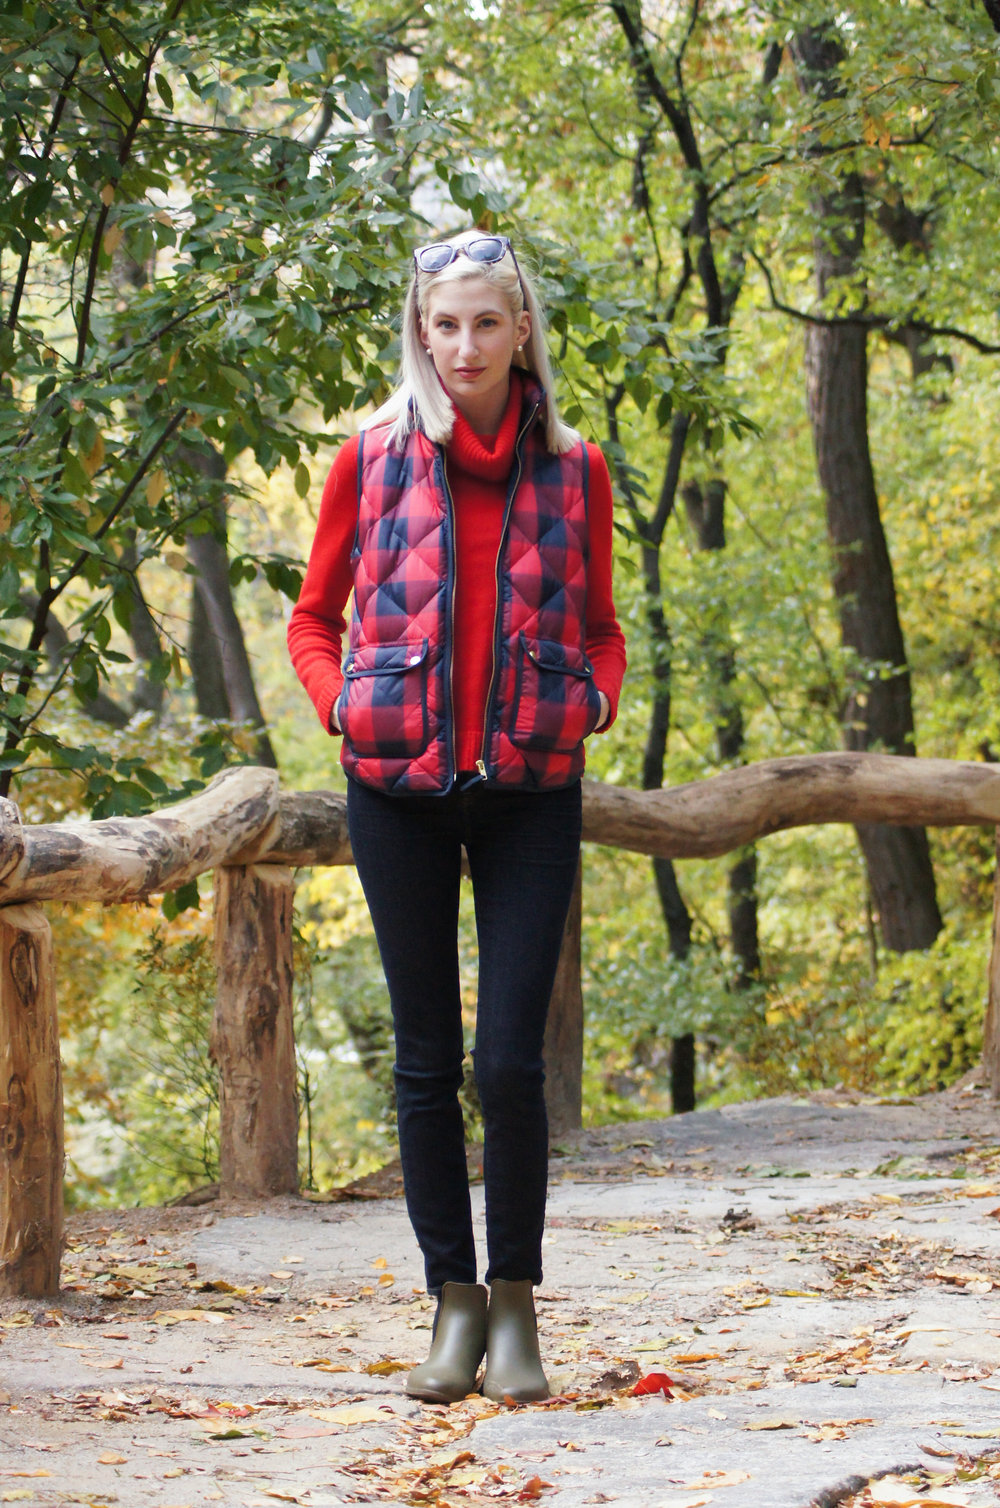 J.Crew matte rain boots, pixie pants, bright red turtle neck, buffalo check excursion puffer vest